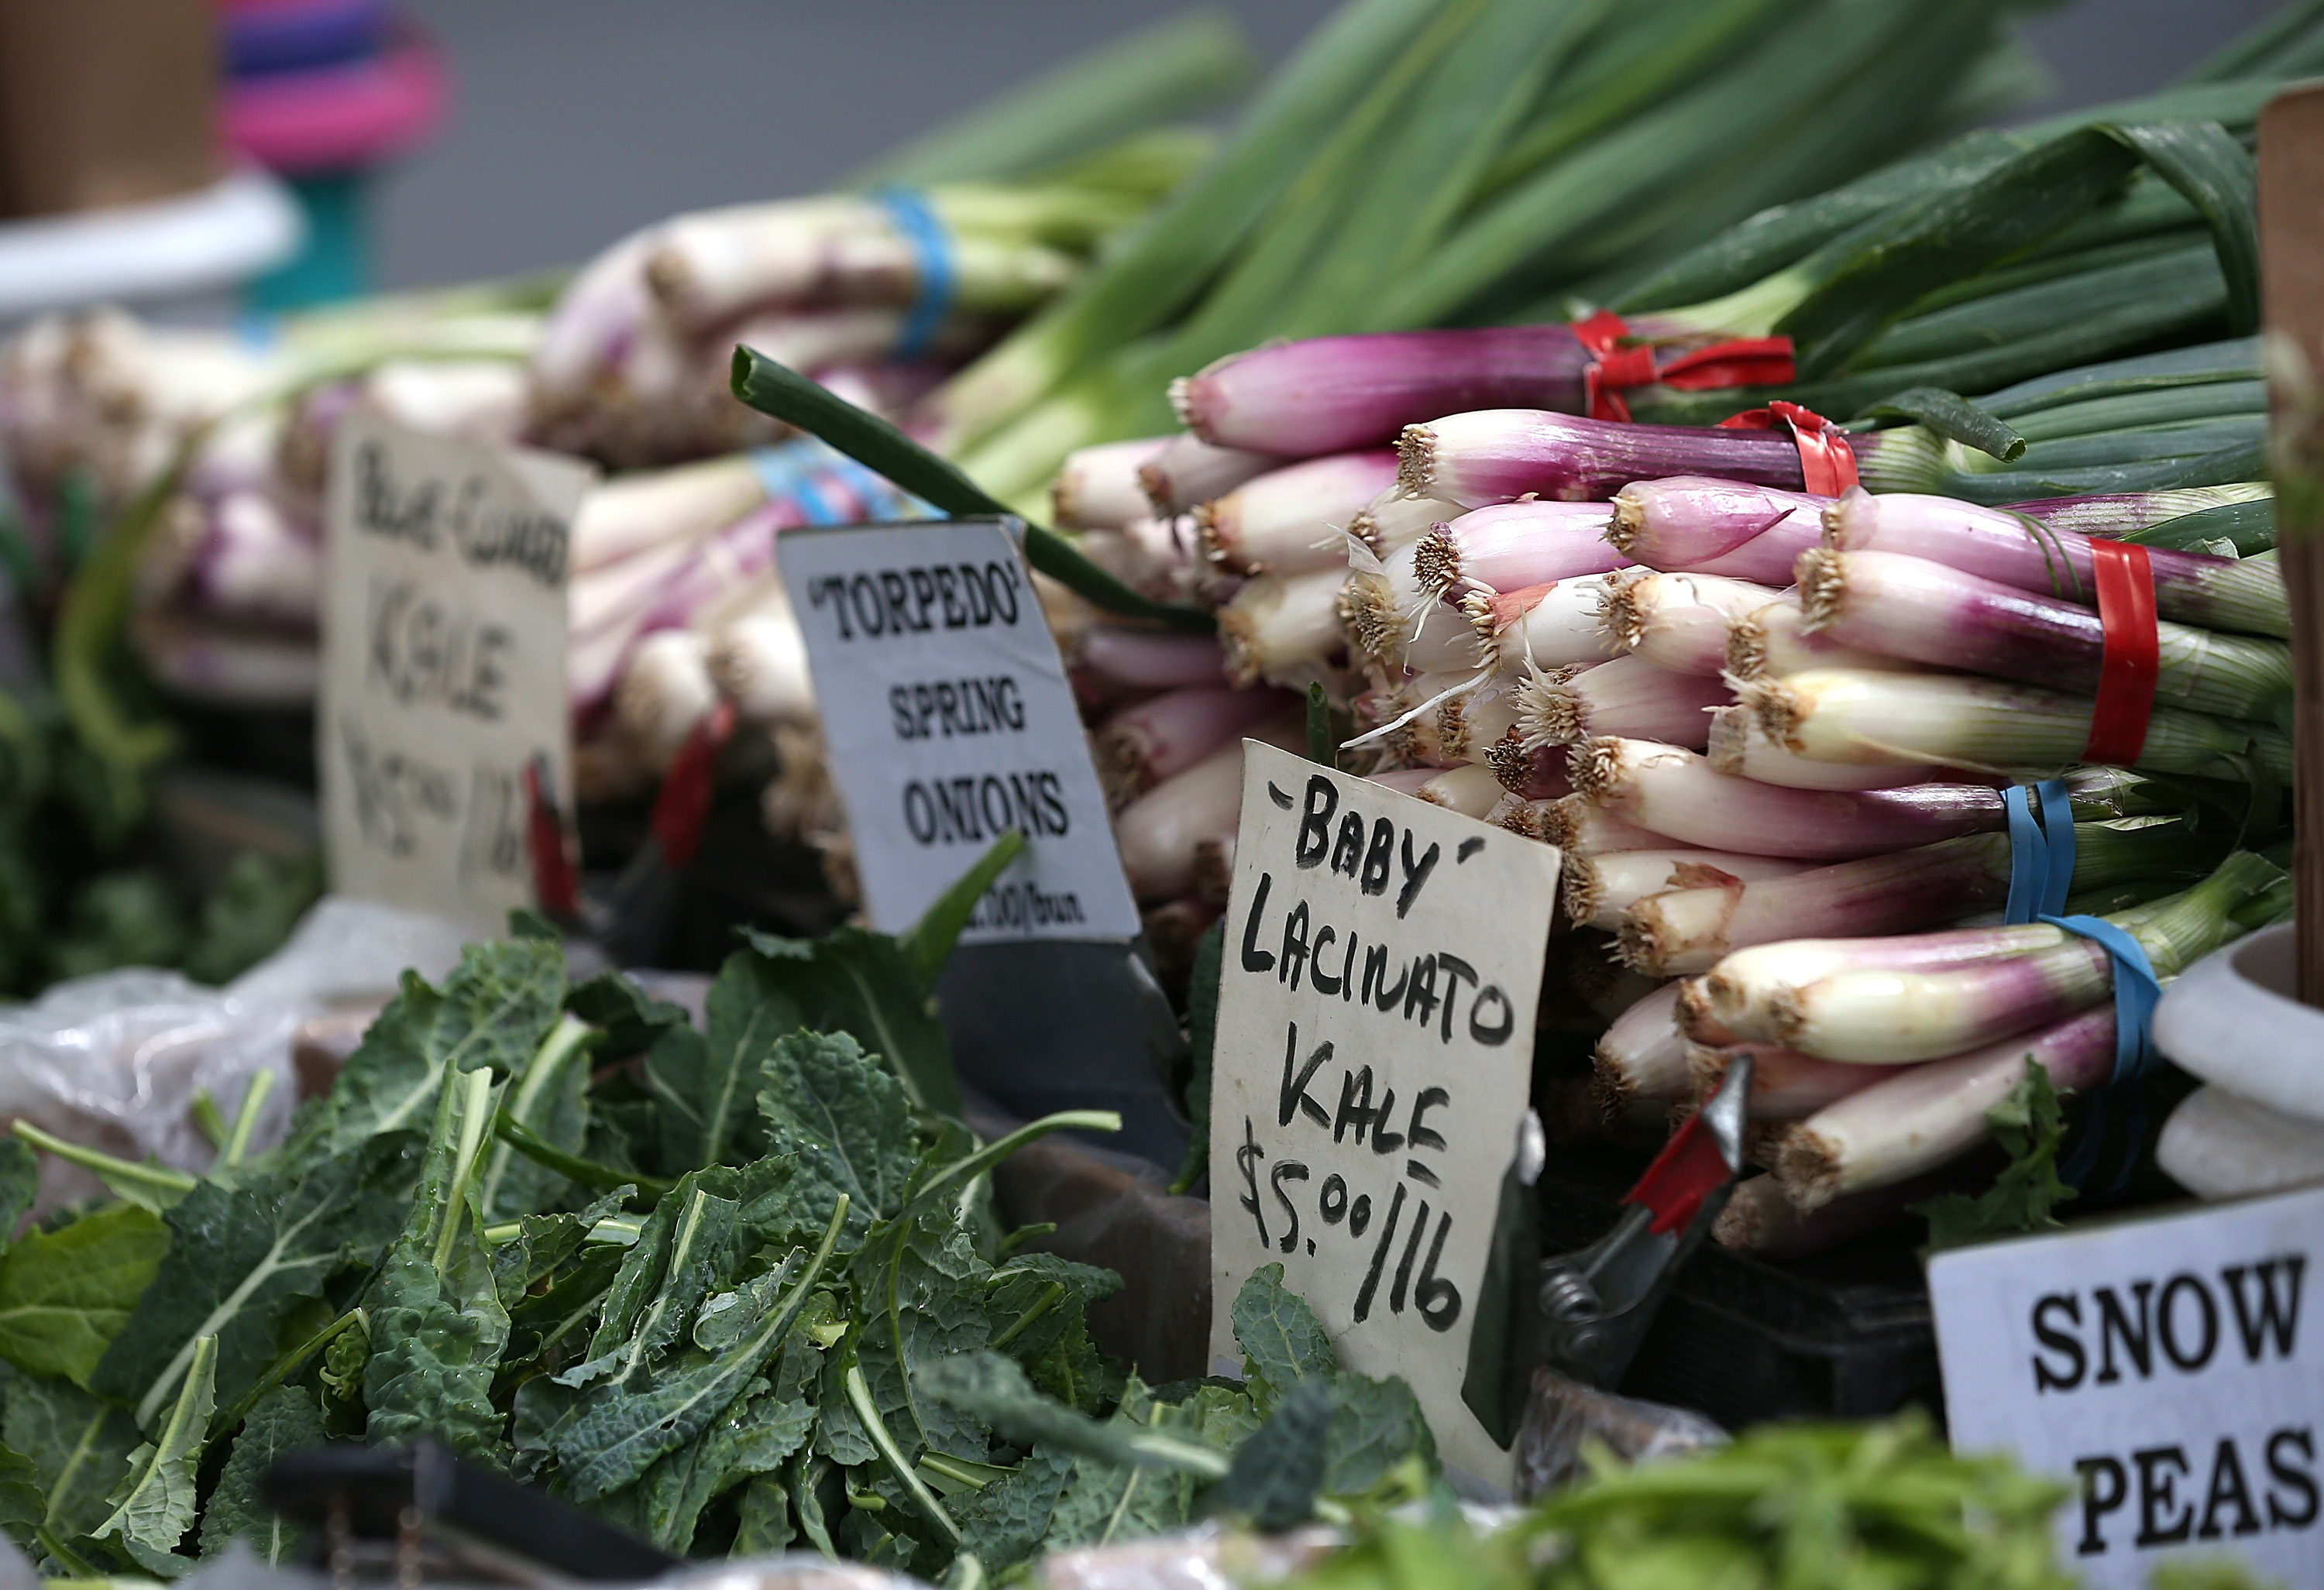 Fresh produce is displayed at the Ferry Plaza Farmers Market on March 27, 2014 in San Francisco.